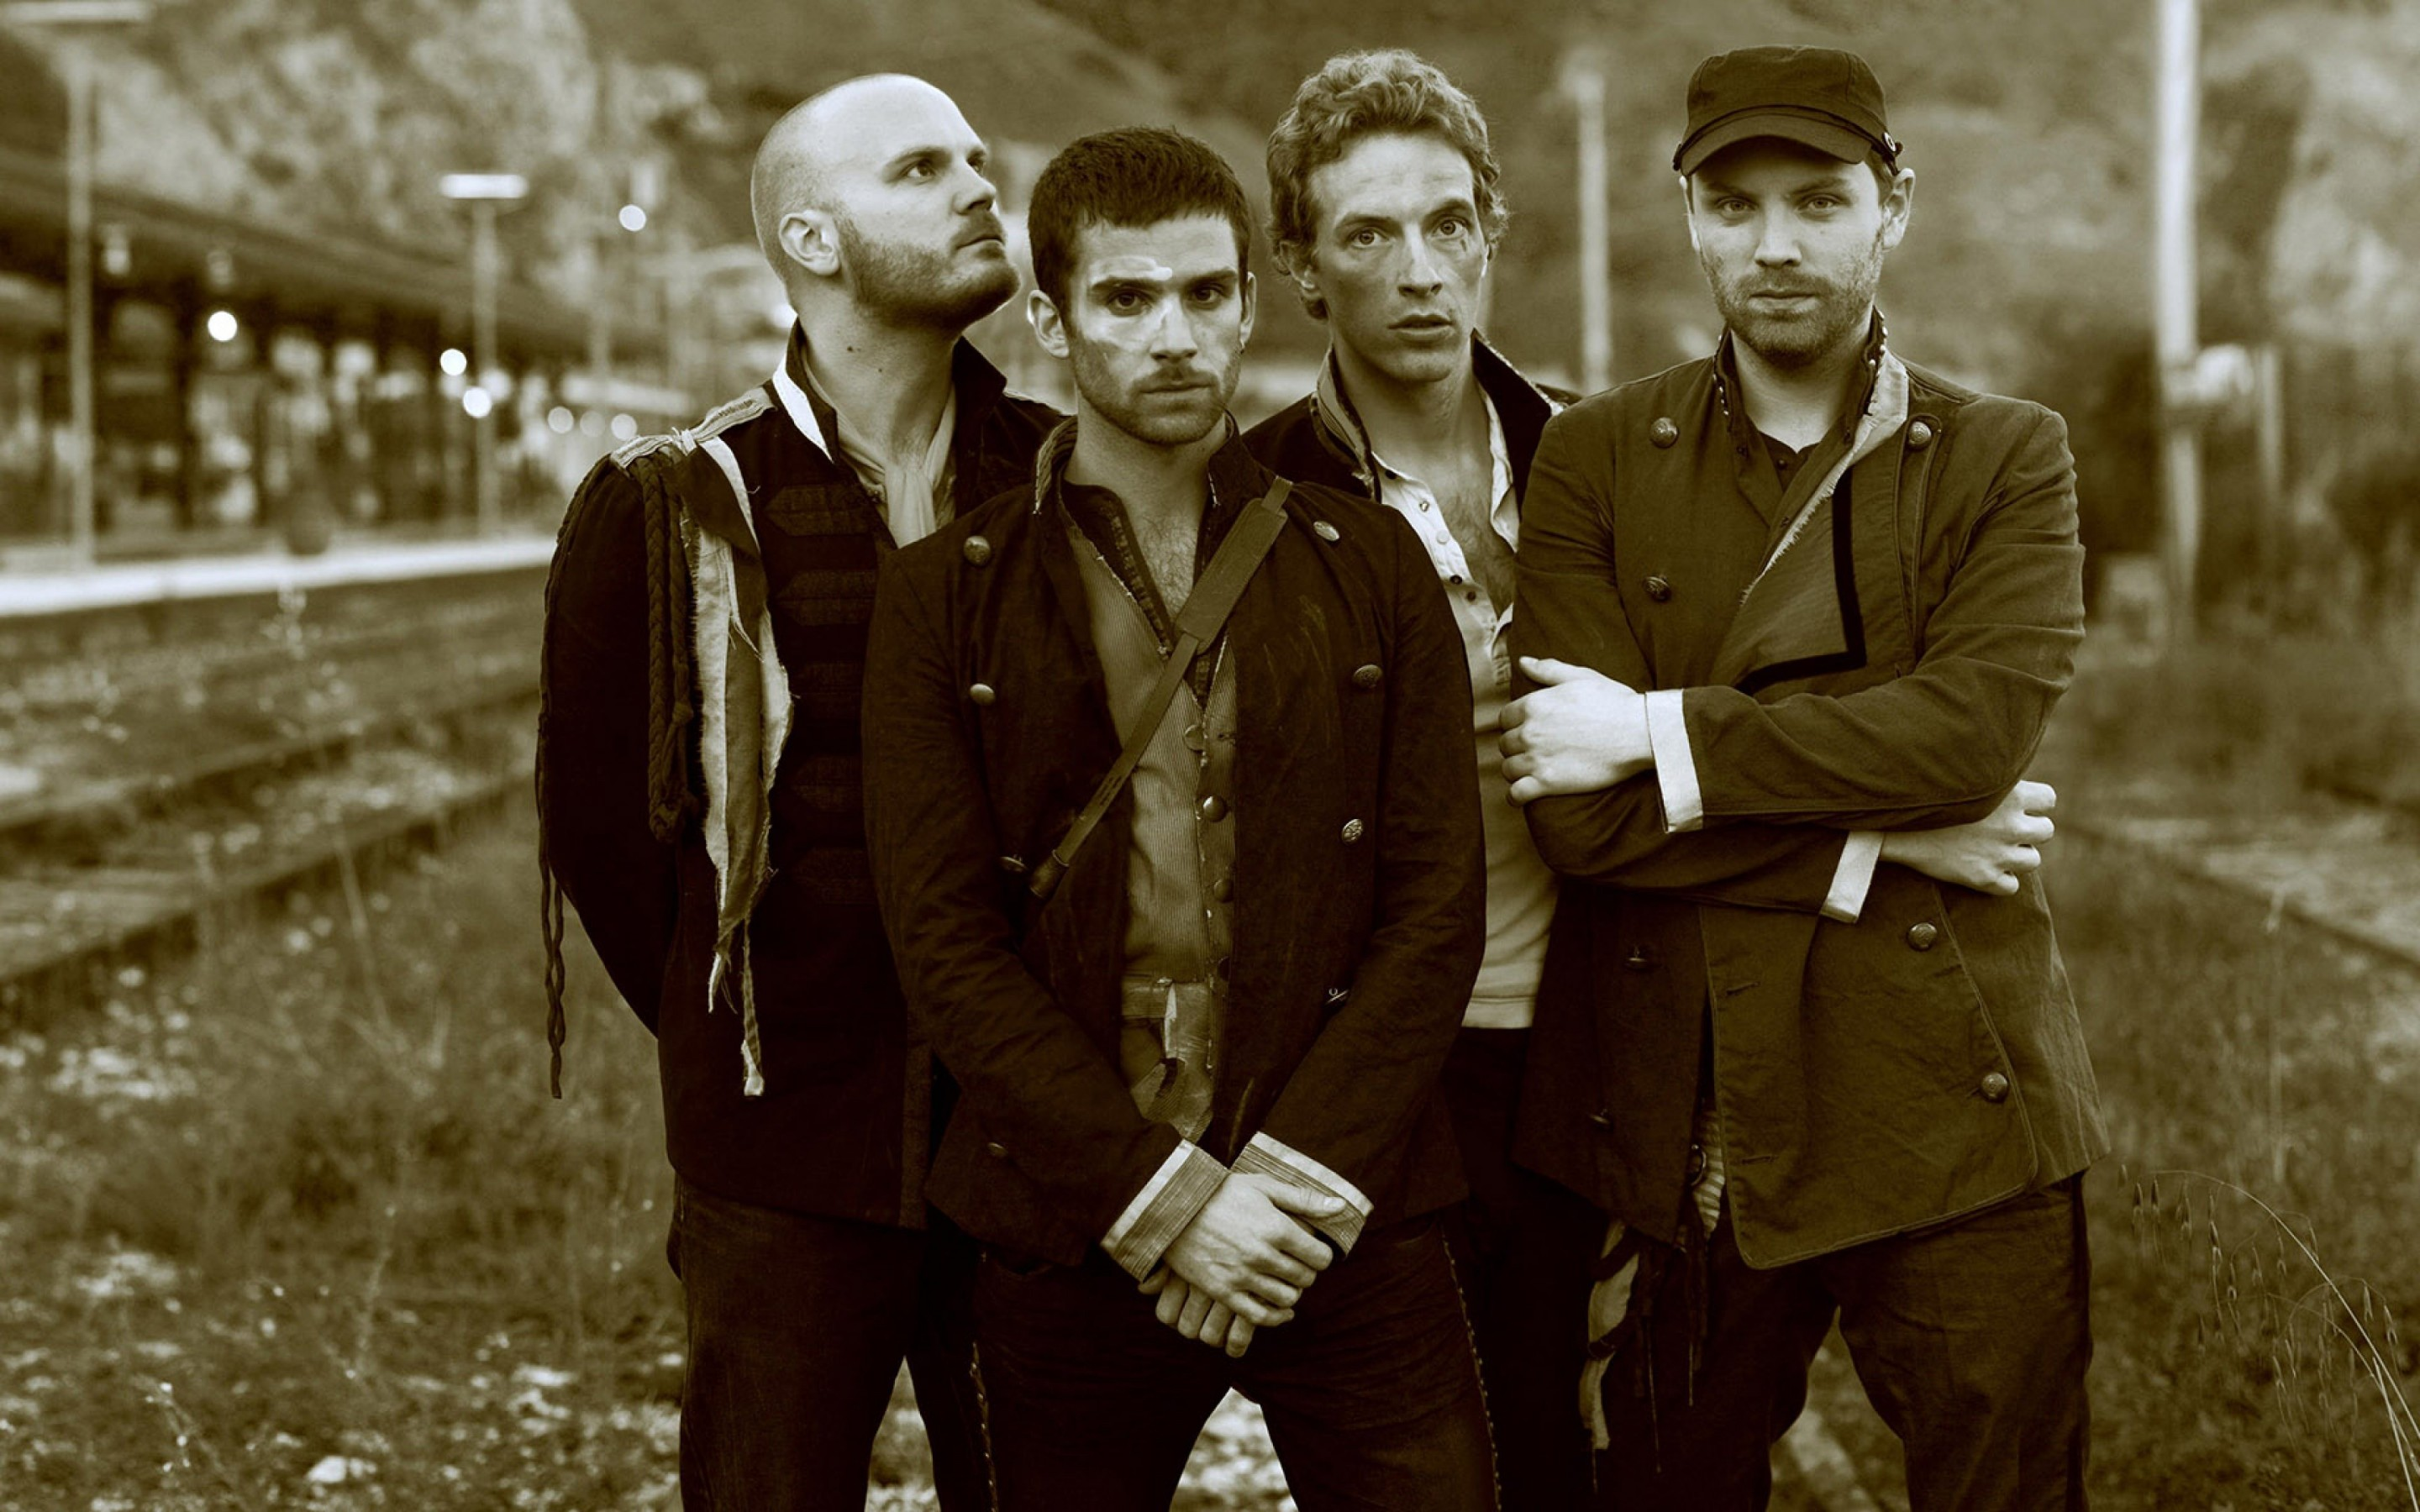 Coldplay Band Sepia Wallpaper for Desktop 2880x1800